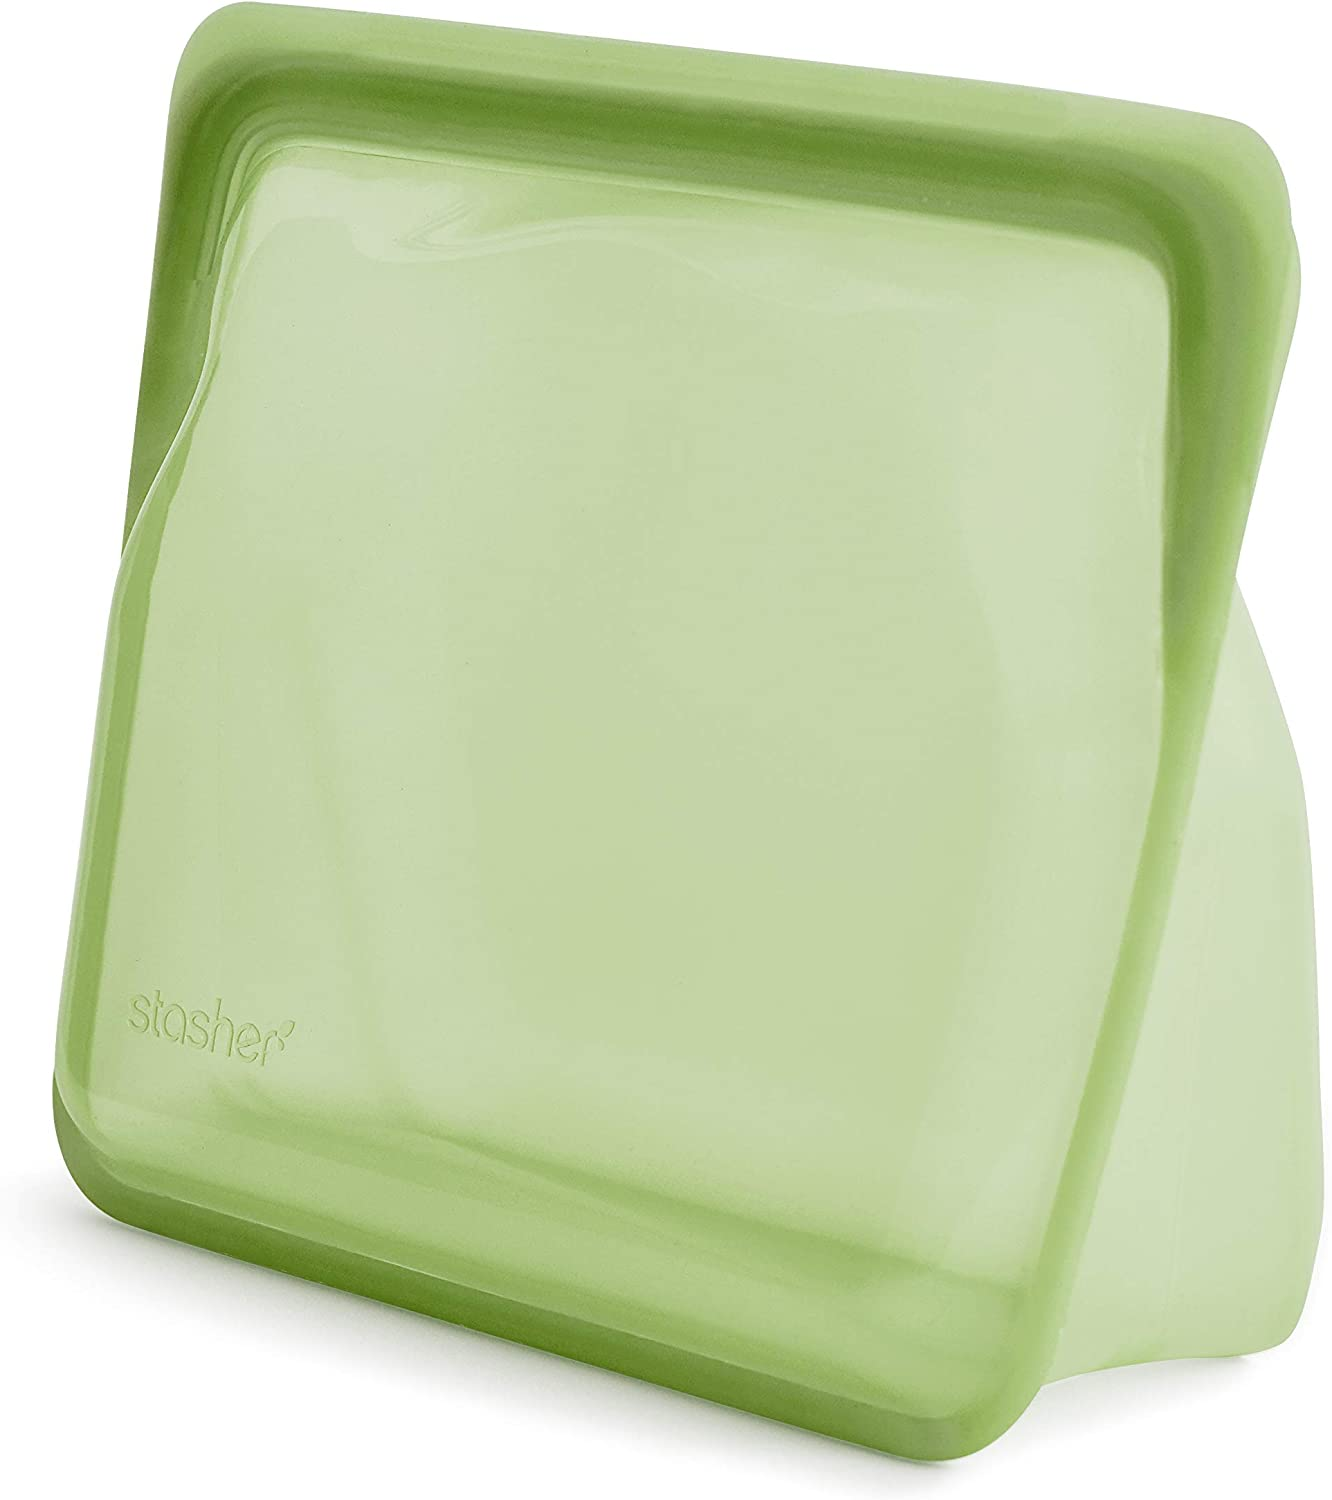 Stasher Platinum Silicone Food Grade Reusable Storage Bag, Green Rainbow (Stand-Up Mid) | Cook, Store, Sous Vide, or Freeze | Leakproof, Dishwasher-Safe, Eco-friendly | 56 Oz